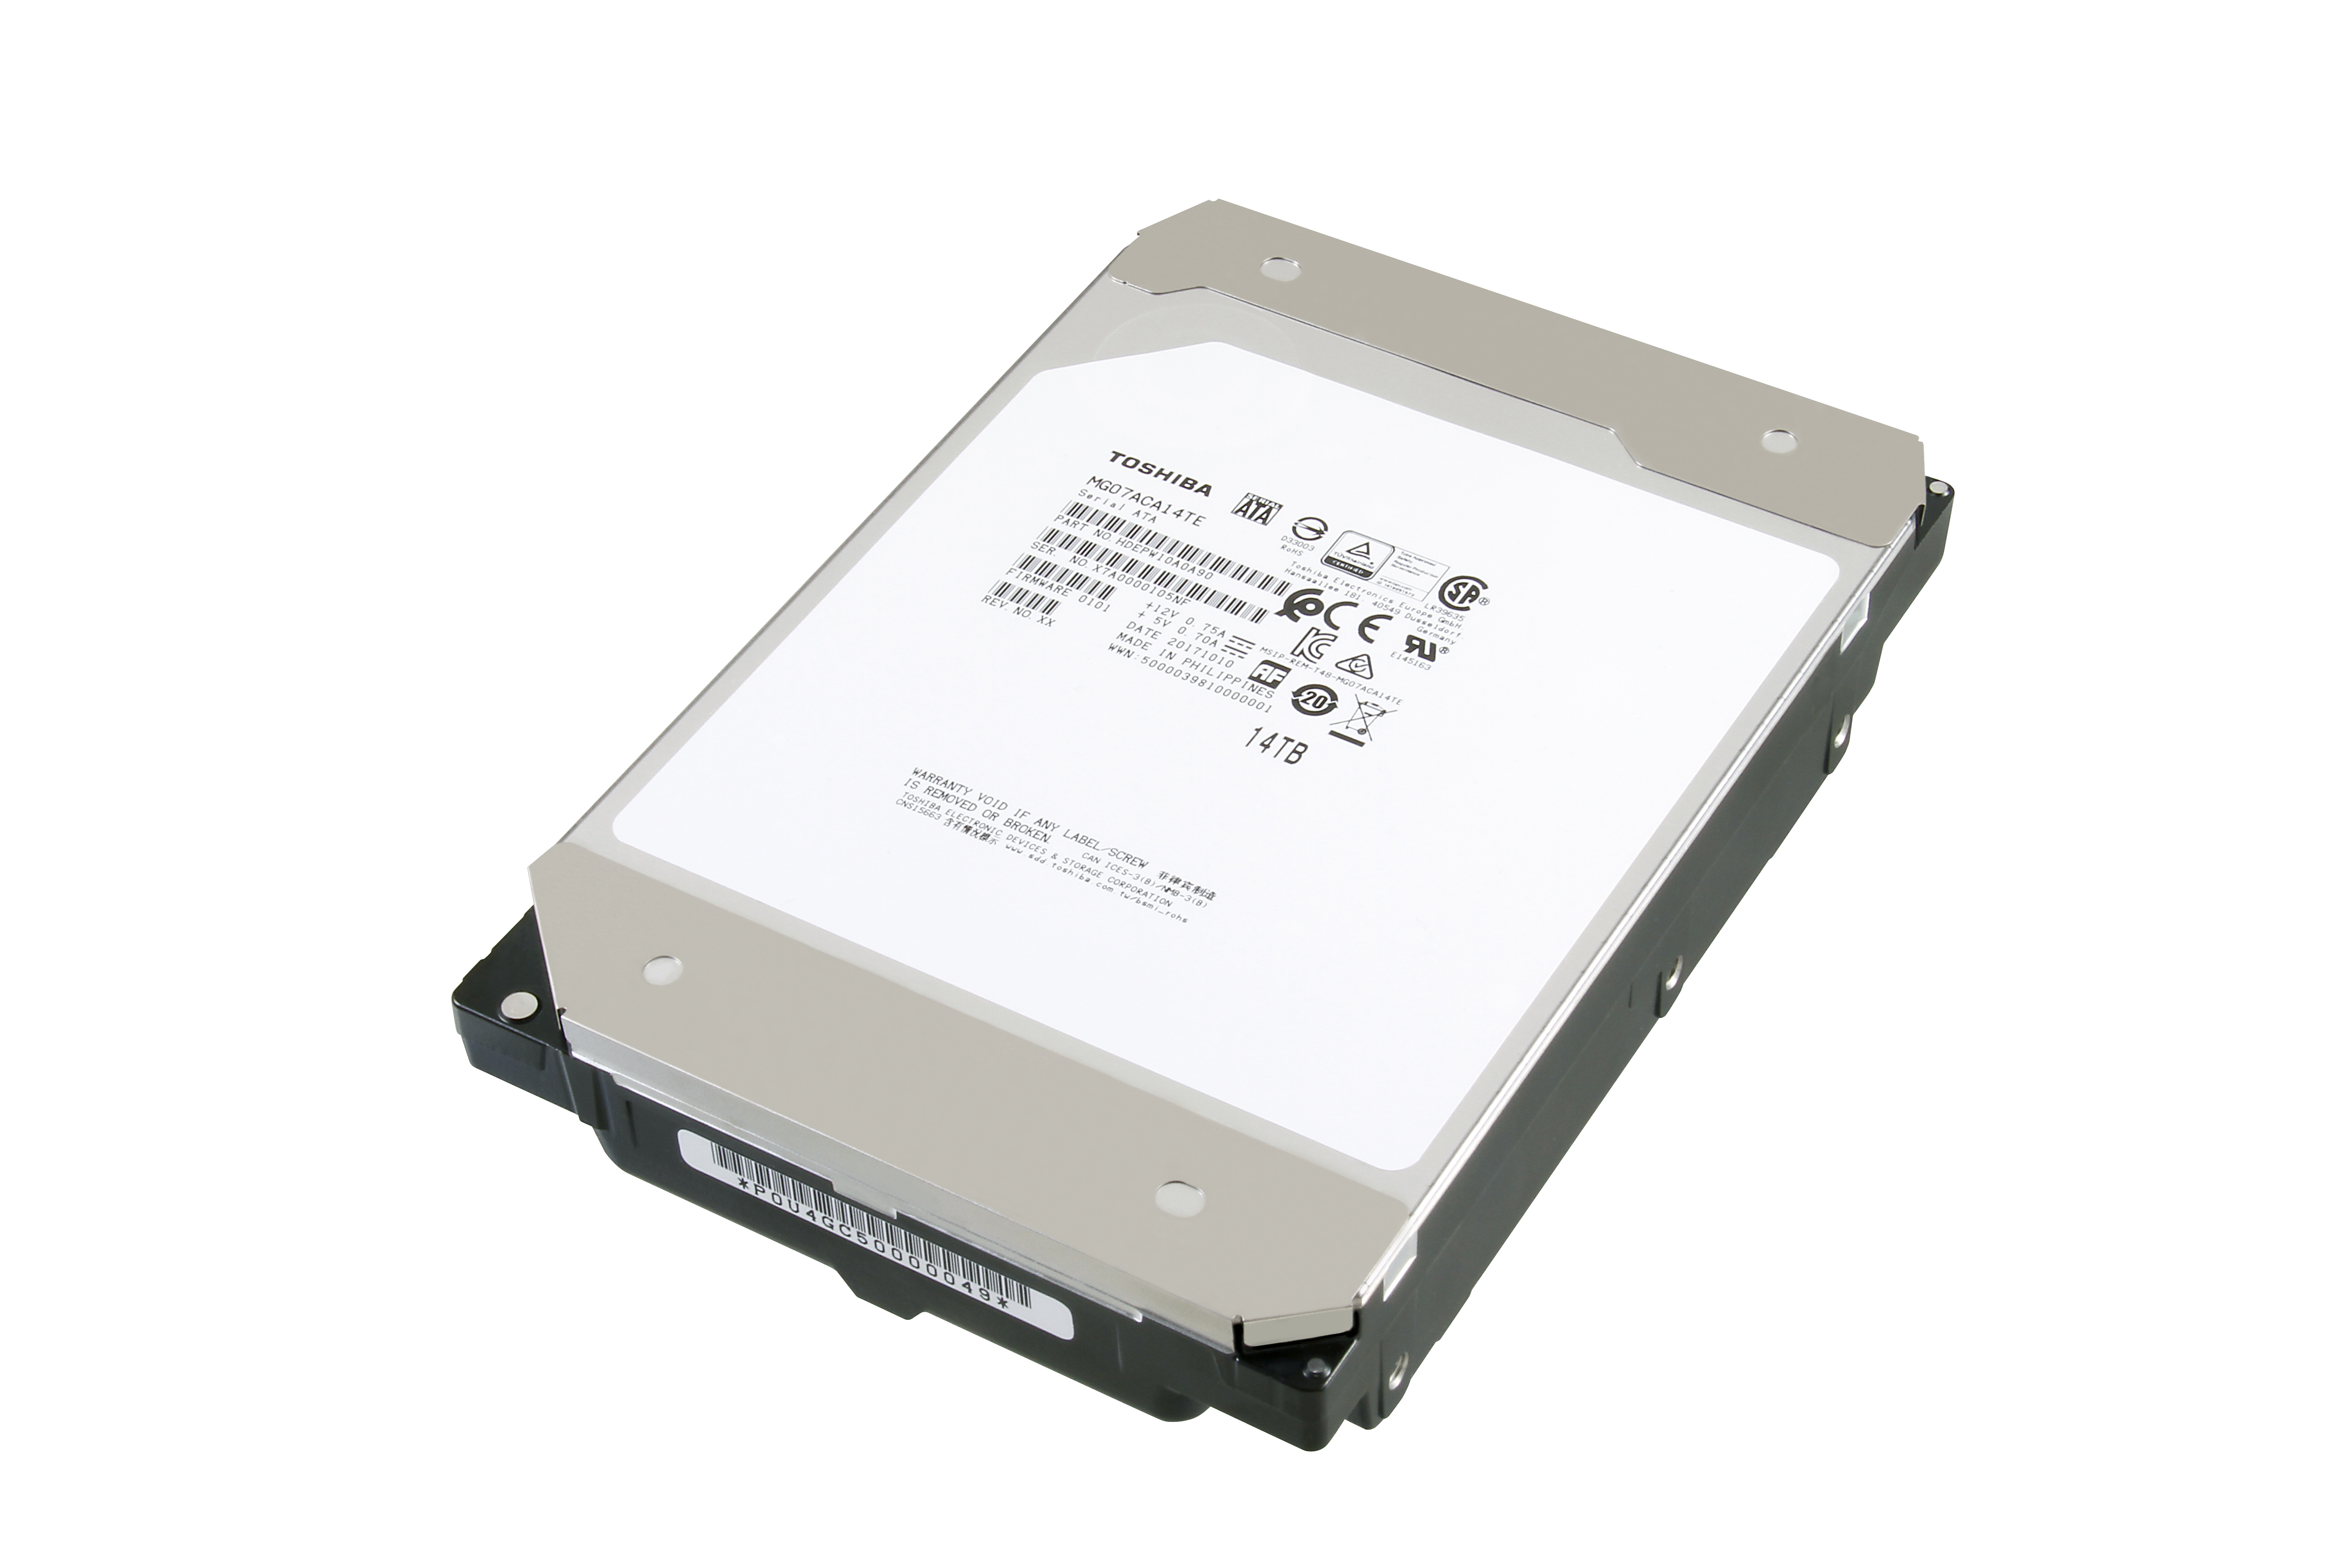 the importance of hdd to the electronics industry Electrical and electronics industry has not only played an increasingly  important role in  in 2011, the electrical and electronics industry contributed  almost 24% of  in 2011, thailand's main electronics exports were hard disk  drives (hdd).